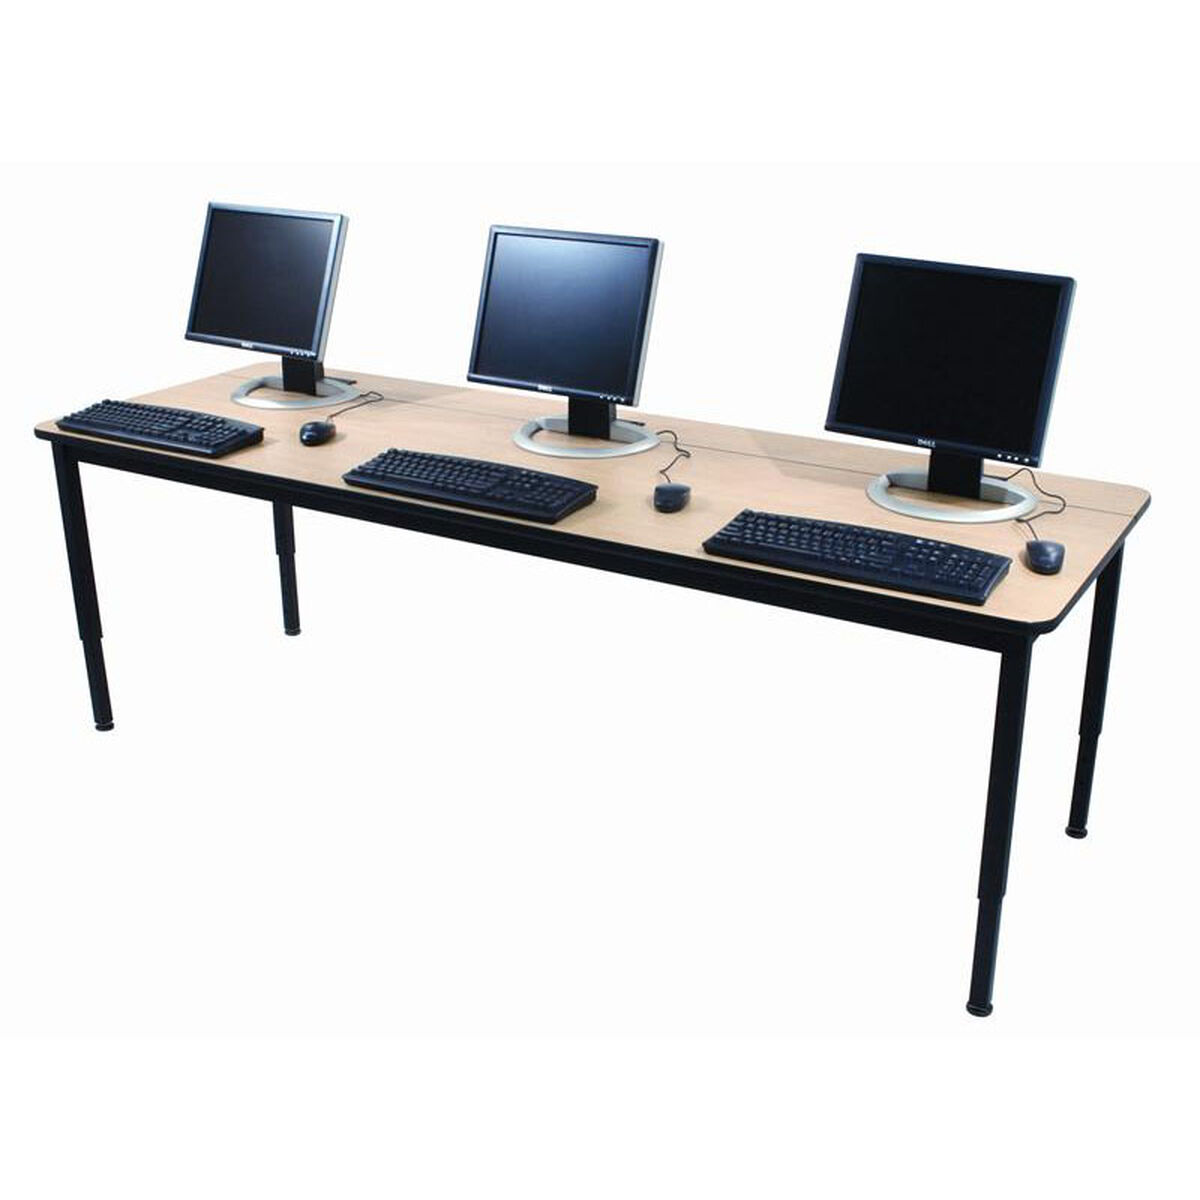 Flip Top Computer Training Table FTT SchoolFurnitureLesscom - Adjustable training table